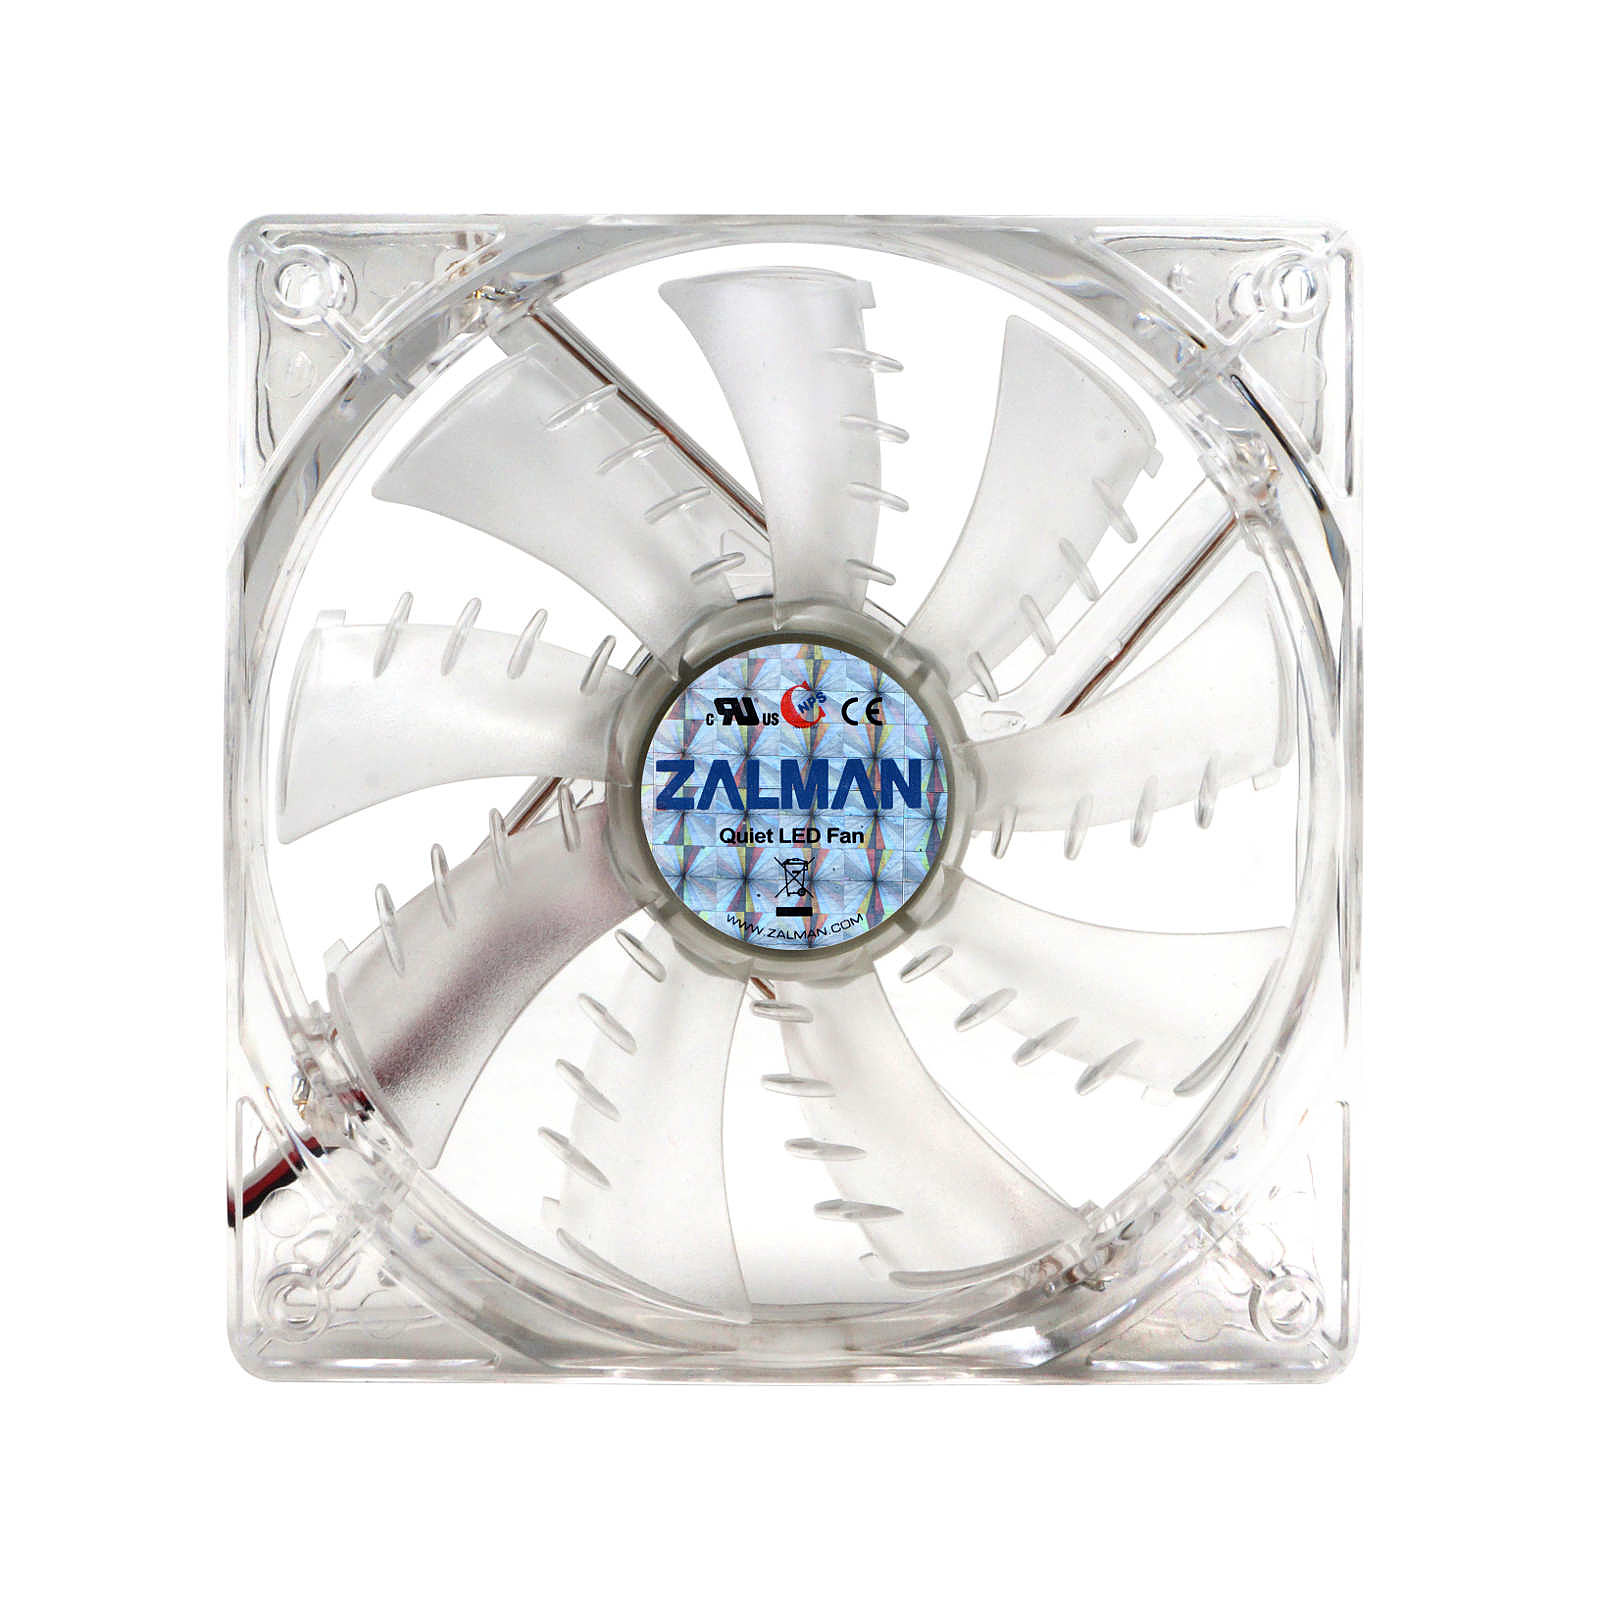 Zalman ZM-F2 LED(SF) silencieux